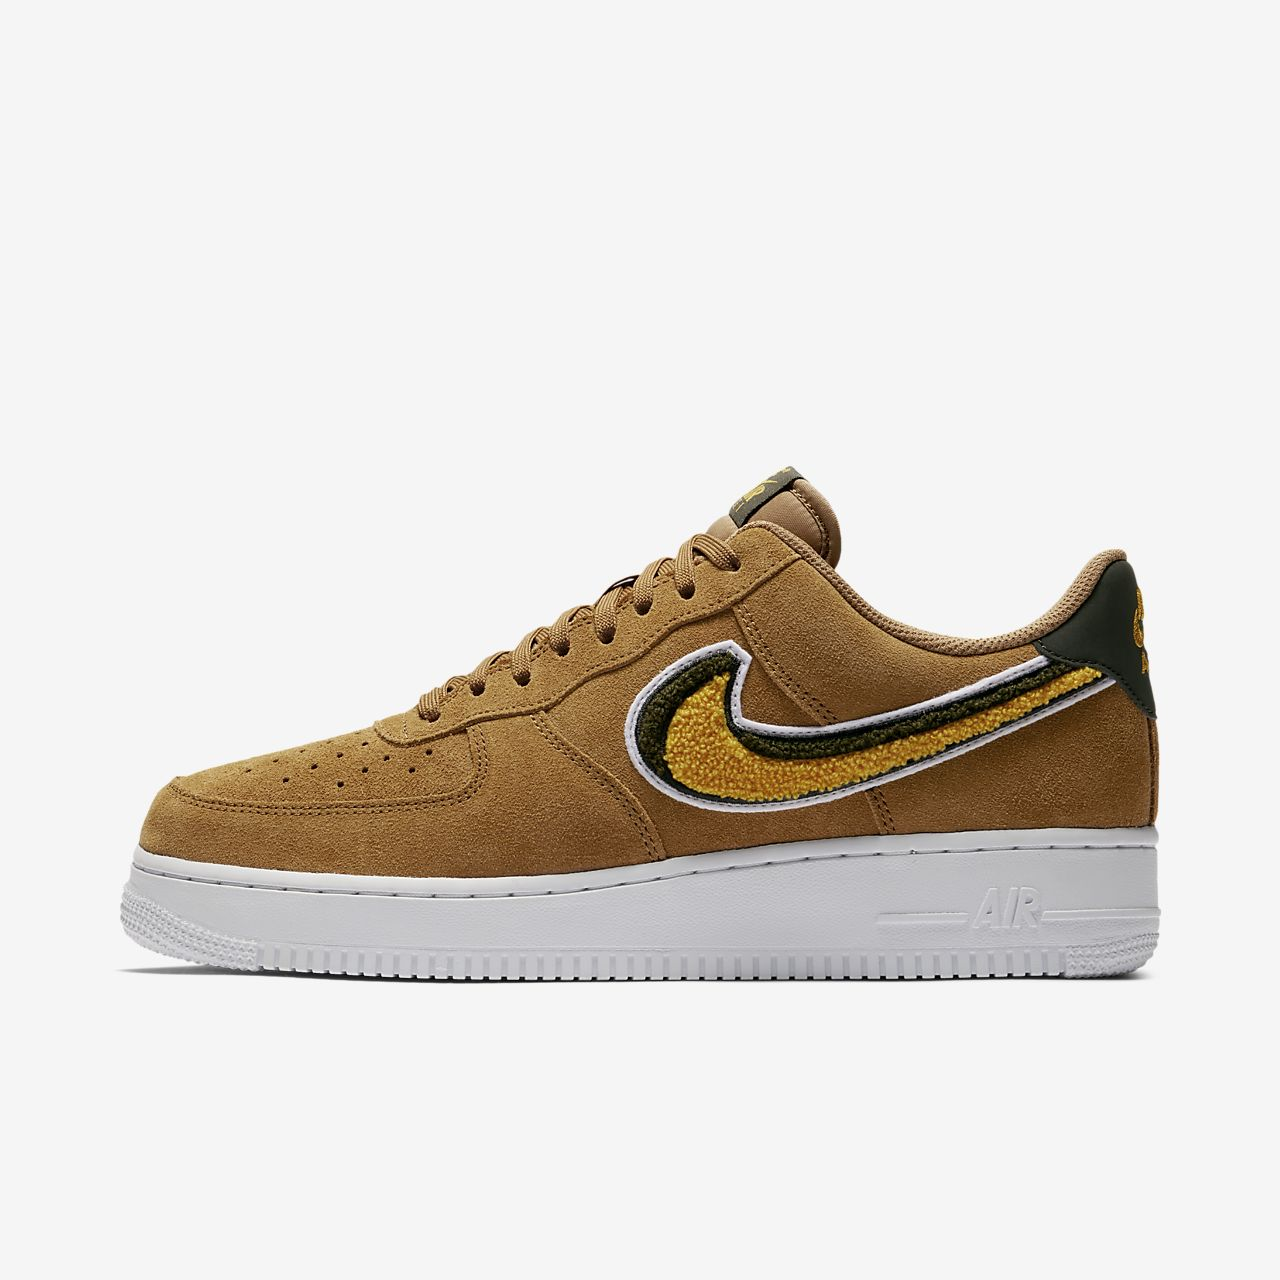 Chaussure Nike Air Force Pour 1 Low 07 Lv8 Pour Force Ca ad6123